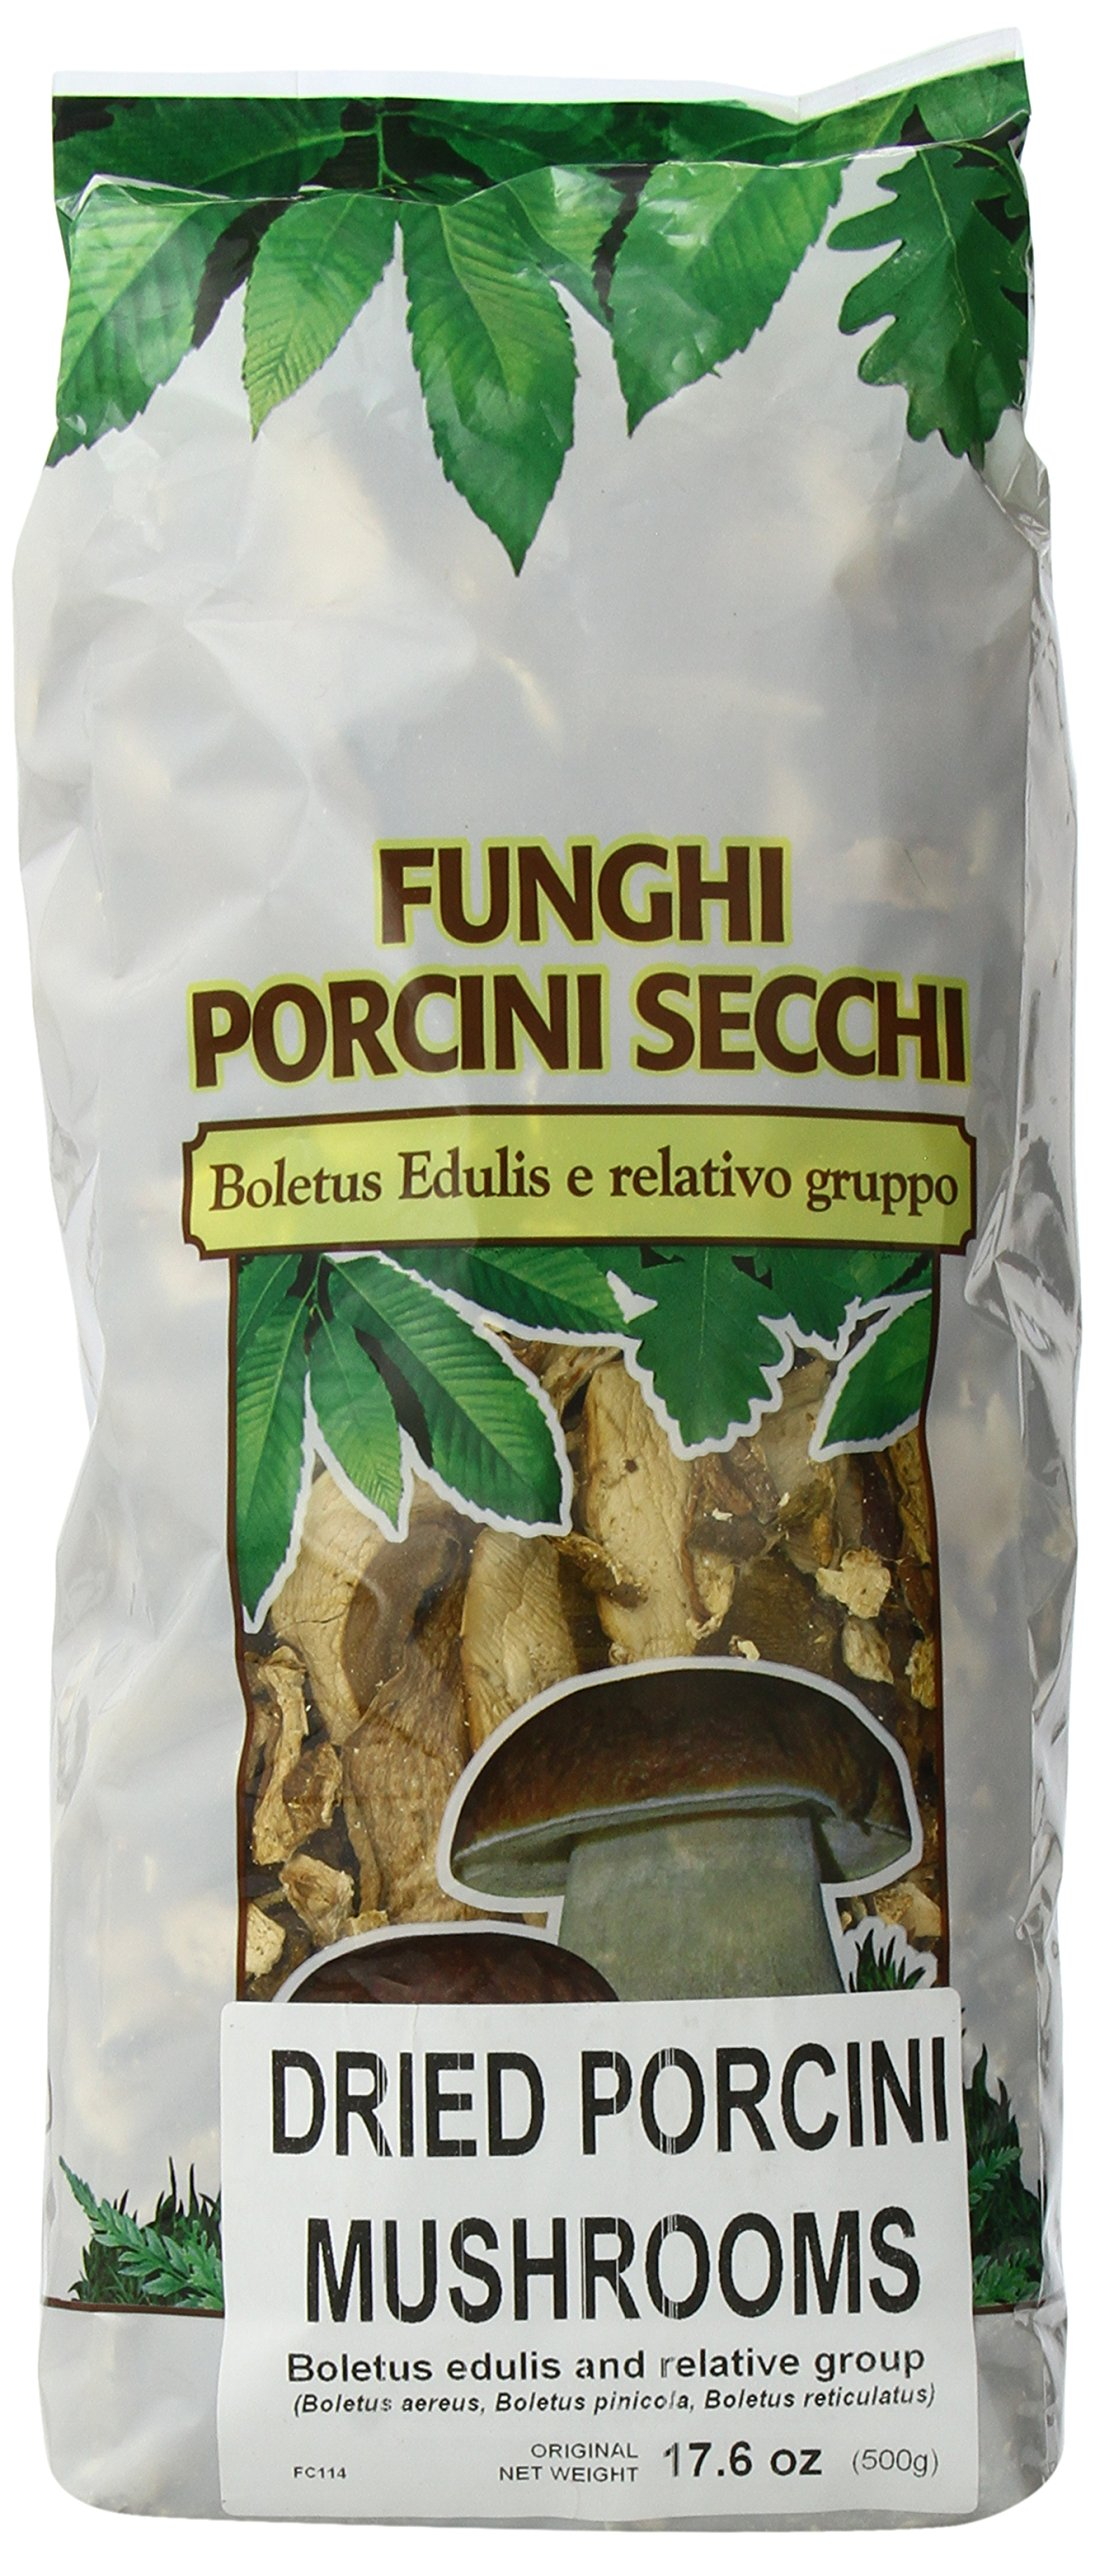 Asiago Food Funghi Porcini Secchi (Dry Porcini Slices), Commercial Quality, 17.6-Ounce Bag by Asiagofood